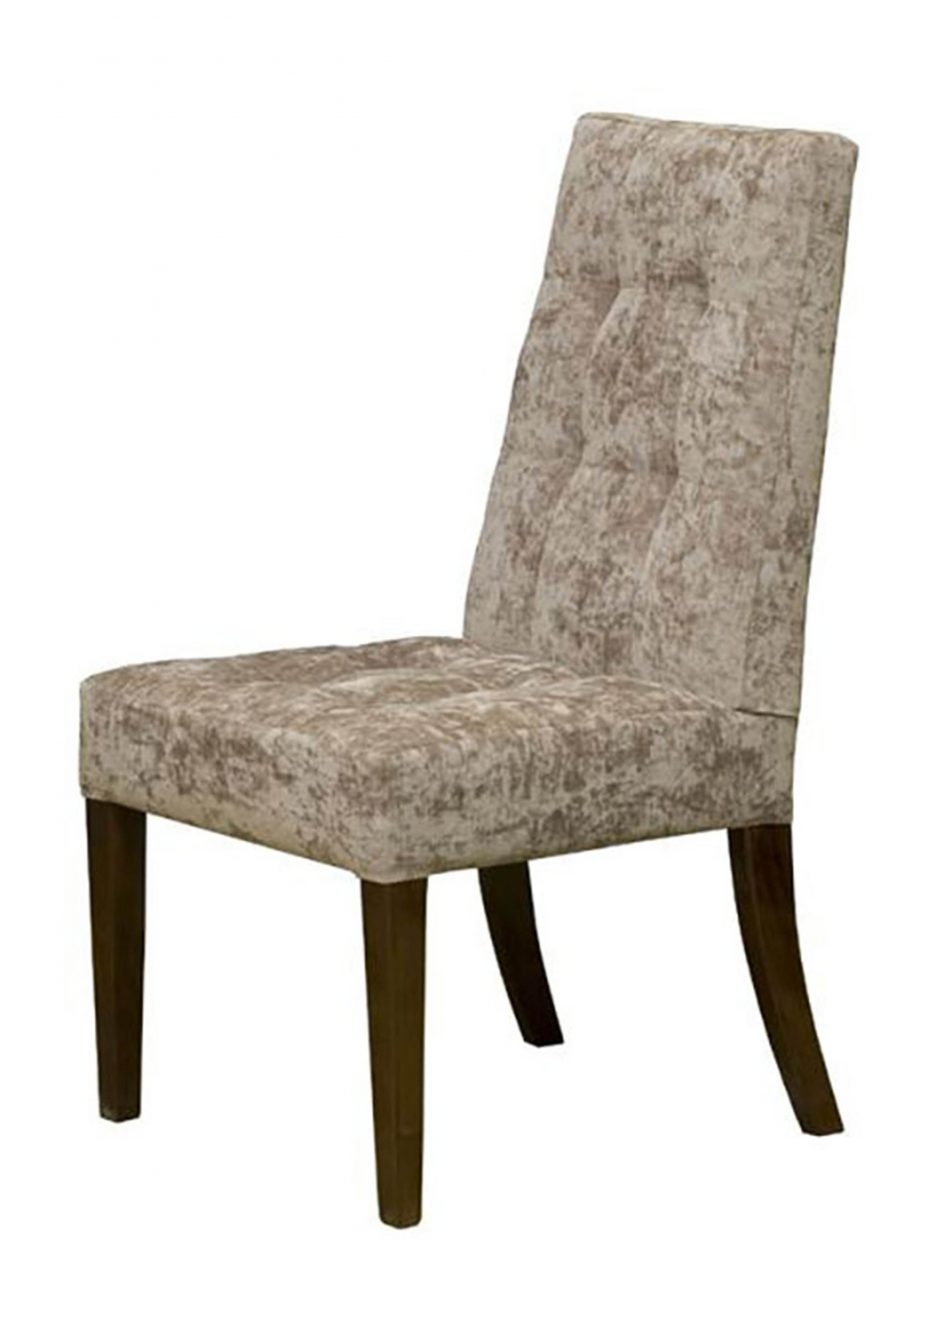 House Haven Dining Chairs 0003 Tufted Dining Chair